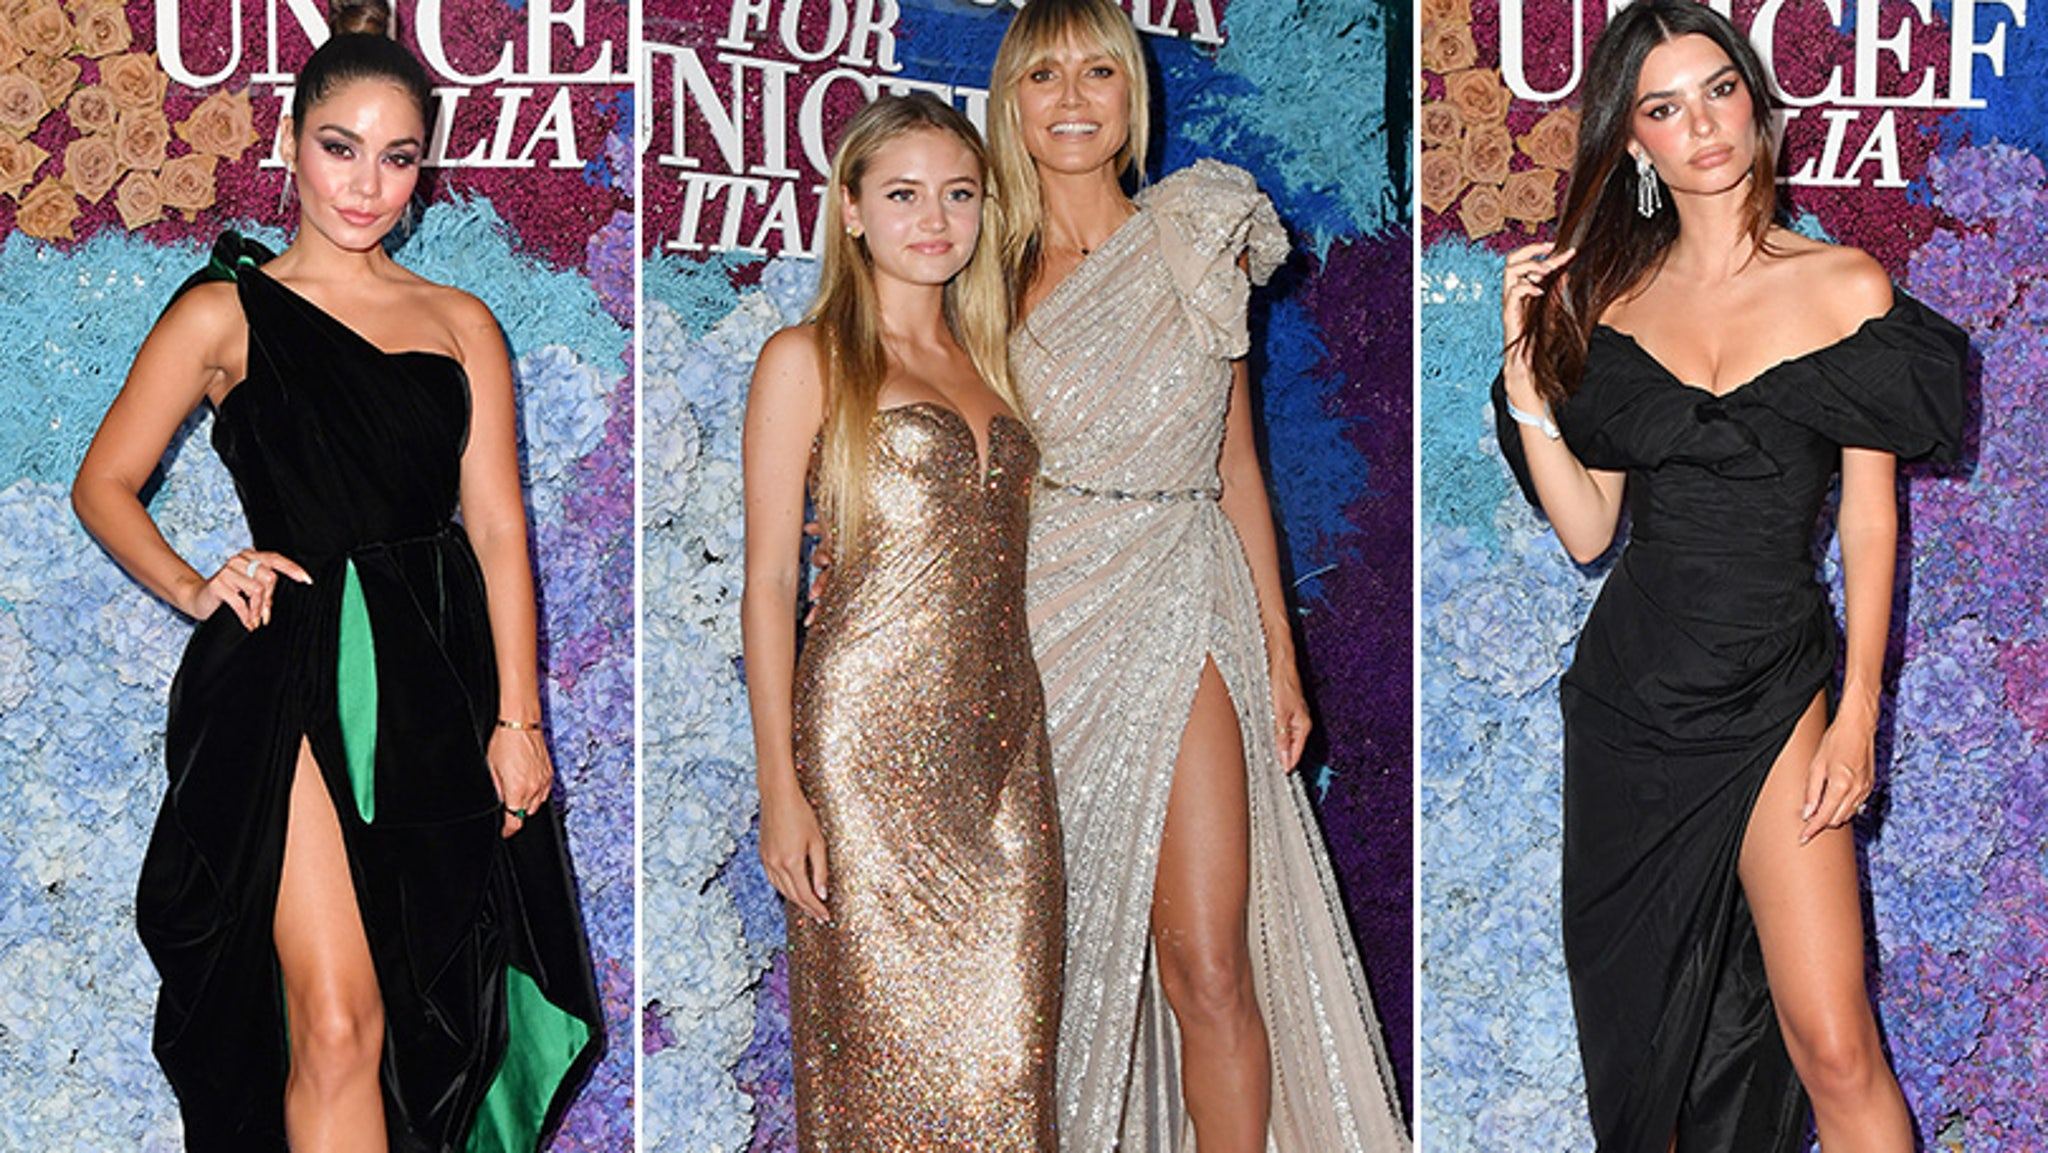 Heidi Klum's 17-year-old daughter Leni joins her on the red carpet at the LuisaViaRoma gala